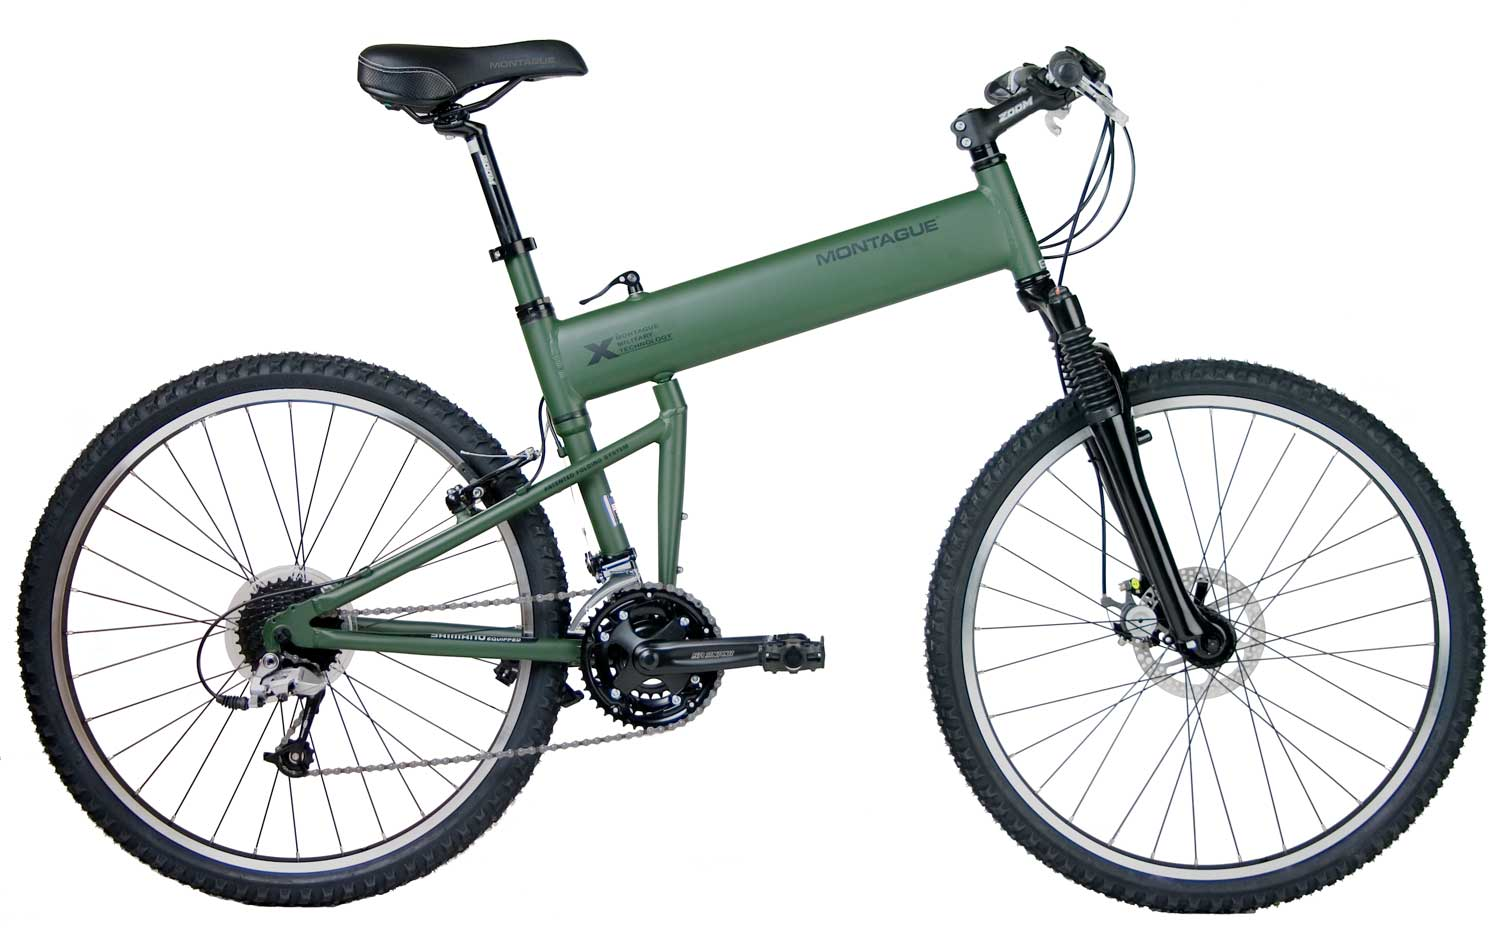 2008 Paratrooper Mountain Folding Bike